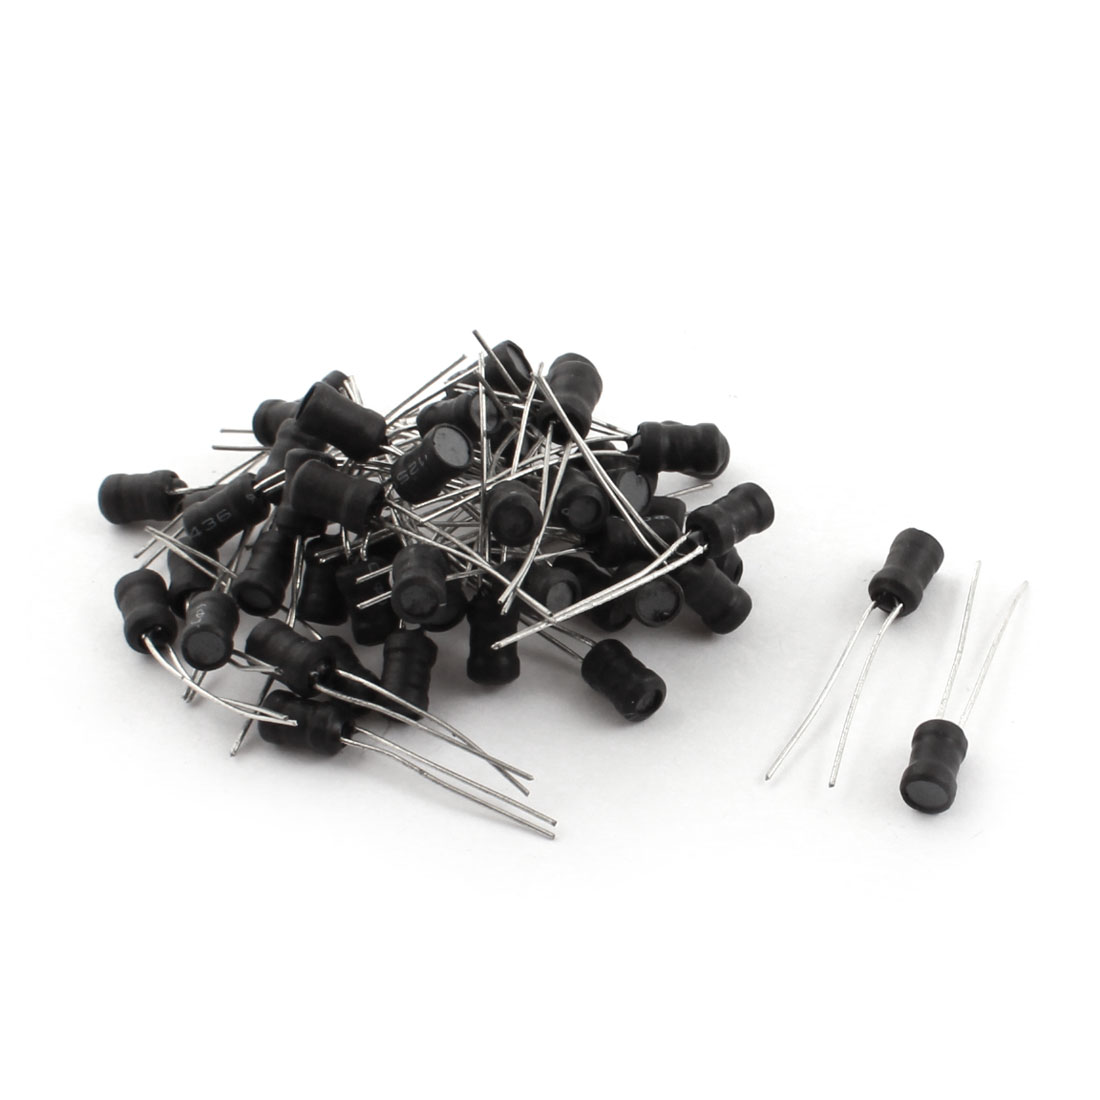 50 Pcs 4.7mH 100mA 10% Tolerance Radial Lead Type Through Hole Coil Choke Inductor 5mm x 6mm